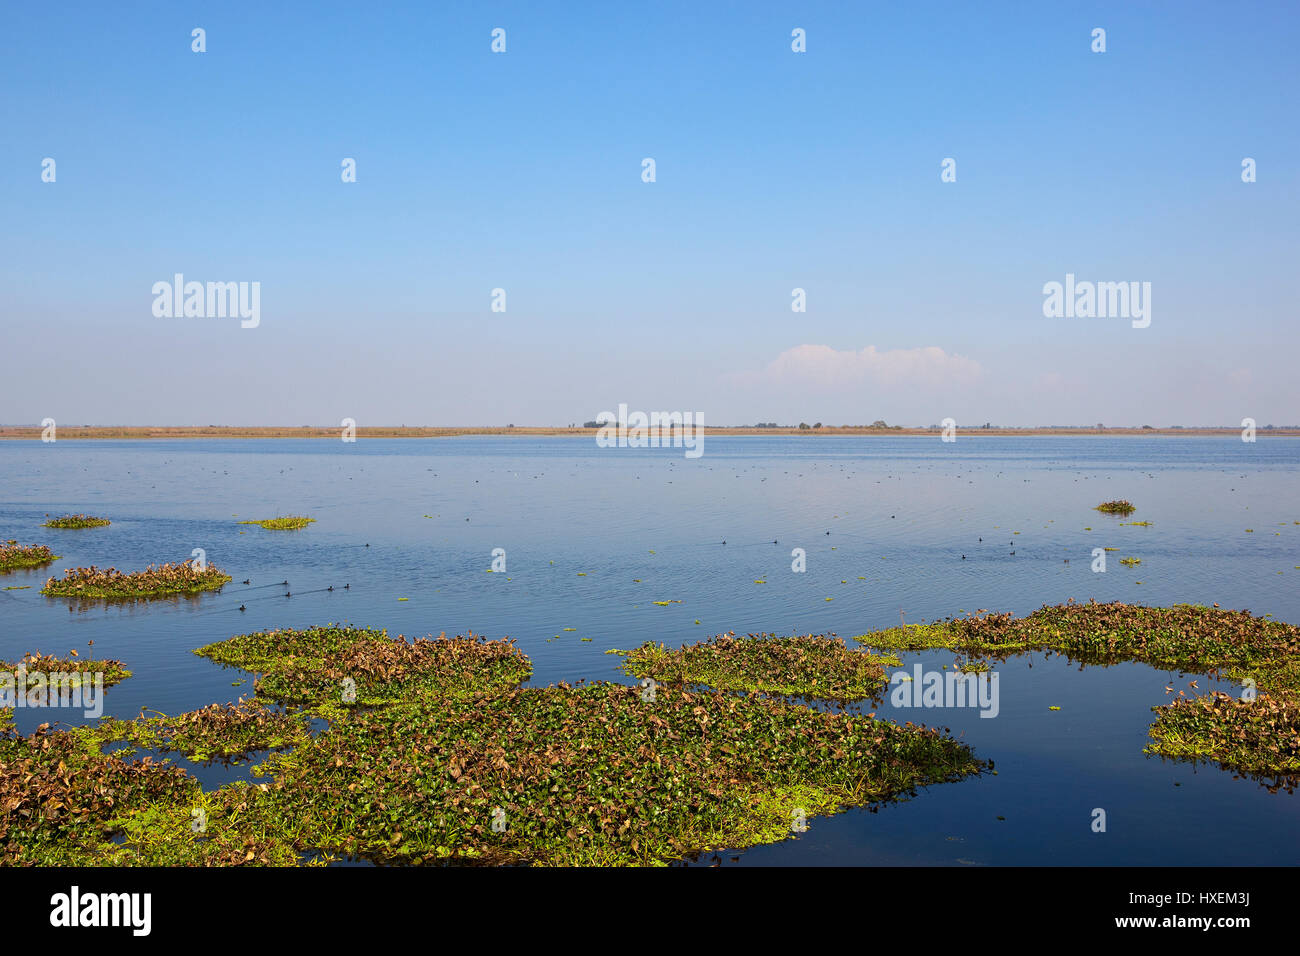 water hyacinth and bird life at harike wetlands nature reserve in punjab india under a blue sky - Stock Image